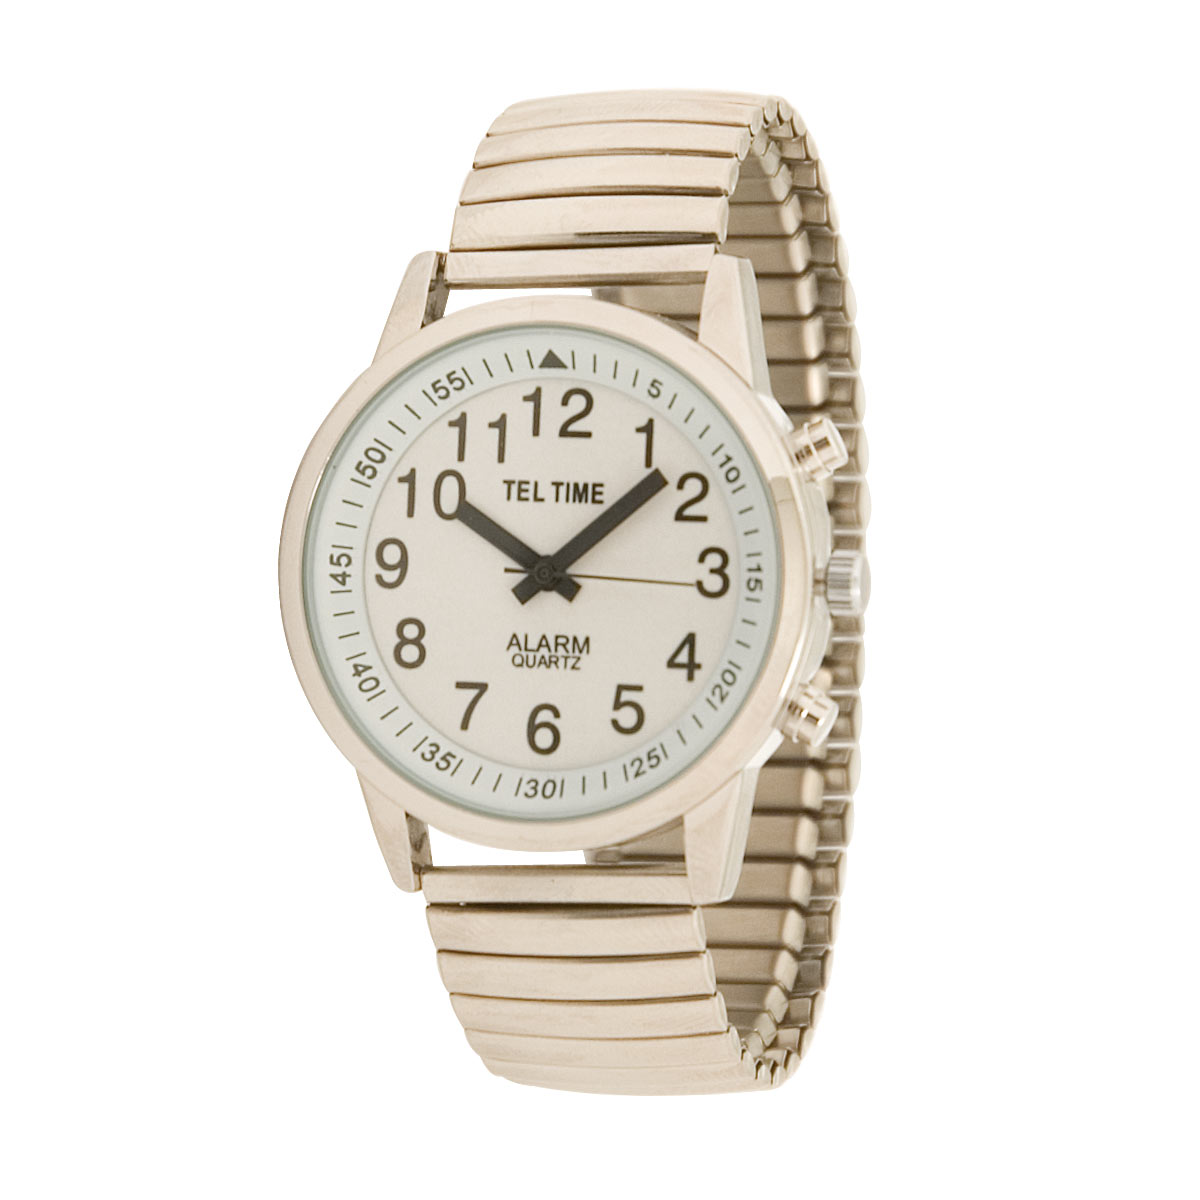 Mens Touch Talking Watch - Large Face - Expansion Band - English